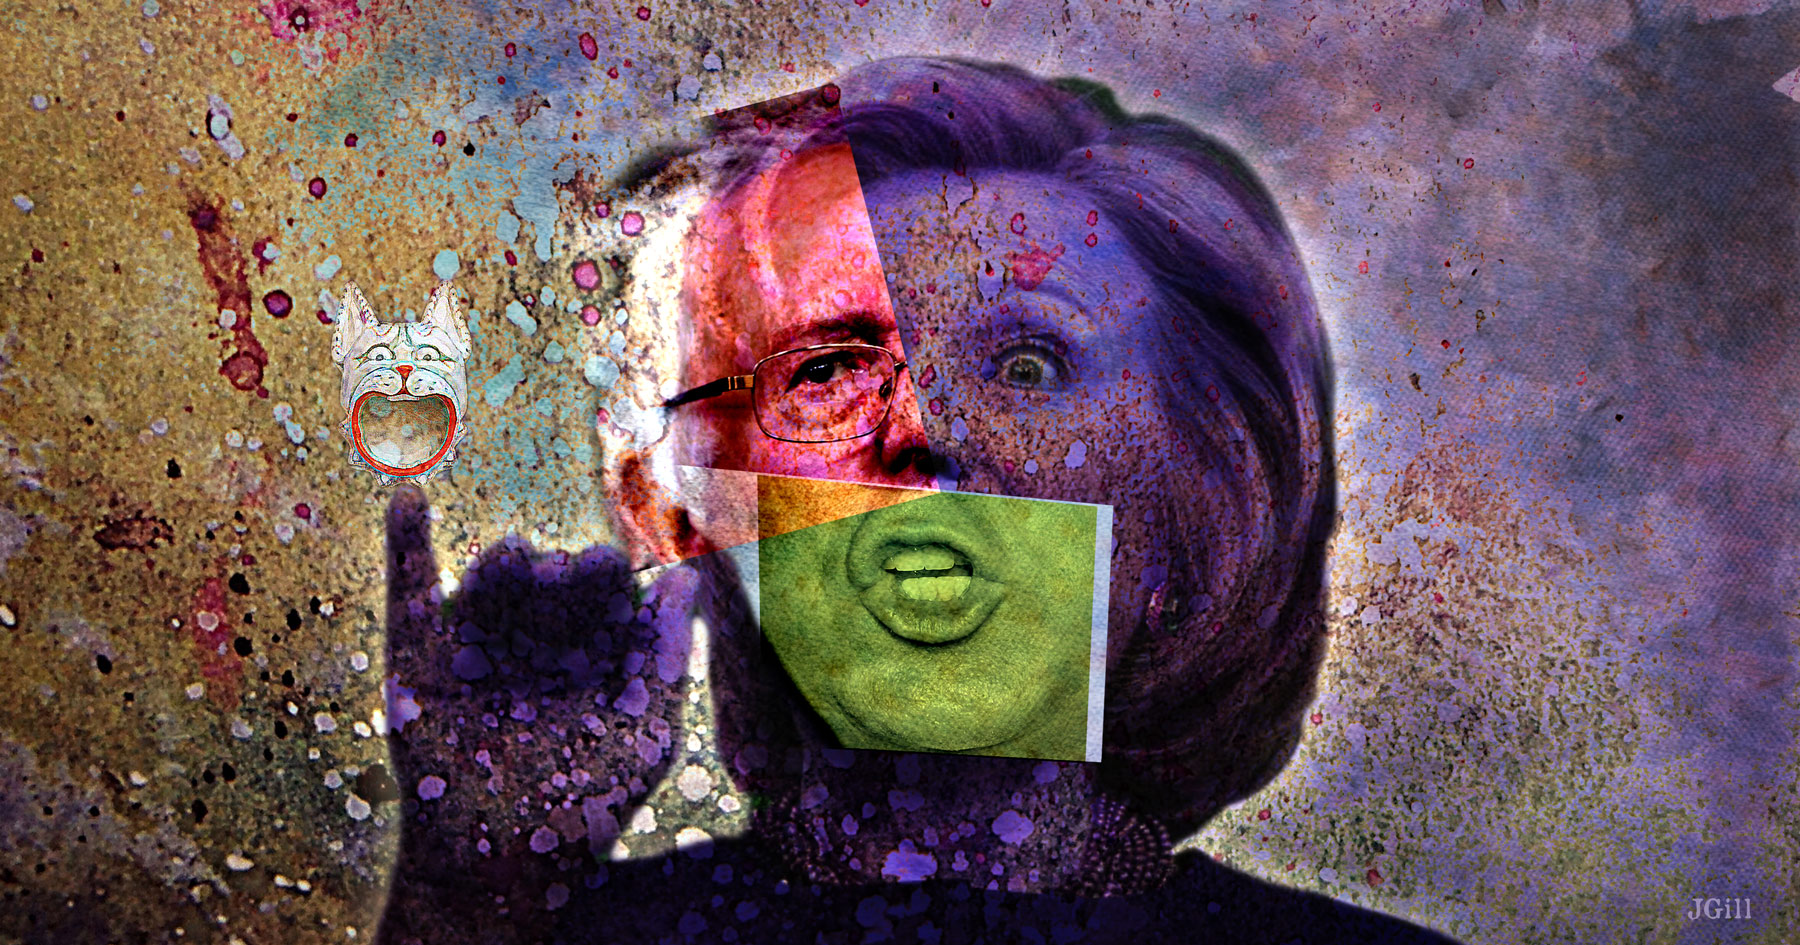 Presidential Weirdness, collage, photomontage, http://cognitivebiasparade.prosite.com/, Paul Jacob, James Gill, Presidential Race, political, politics